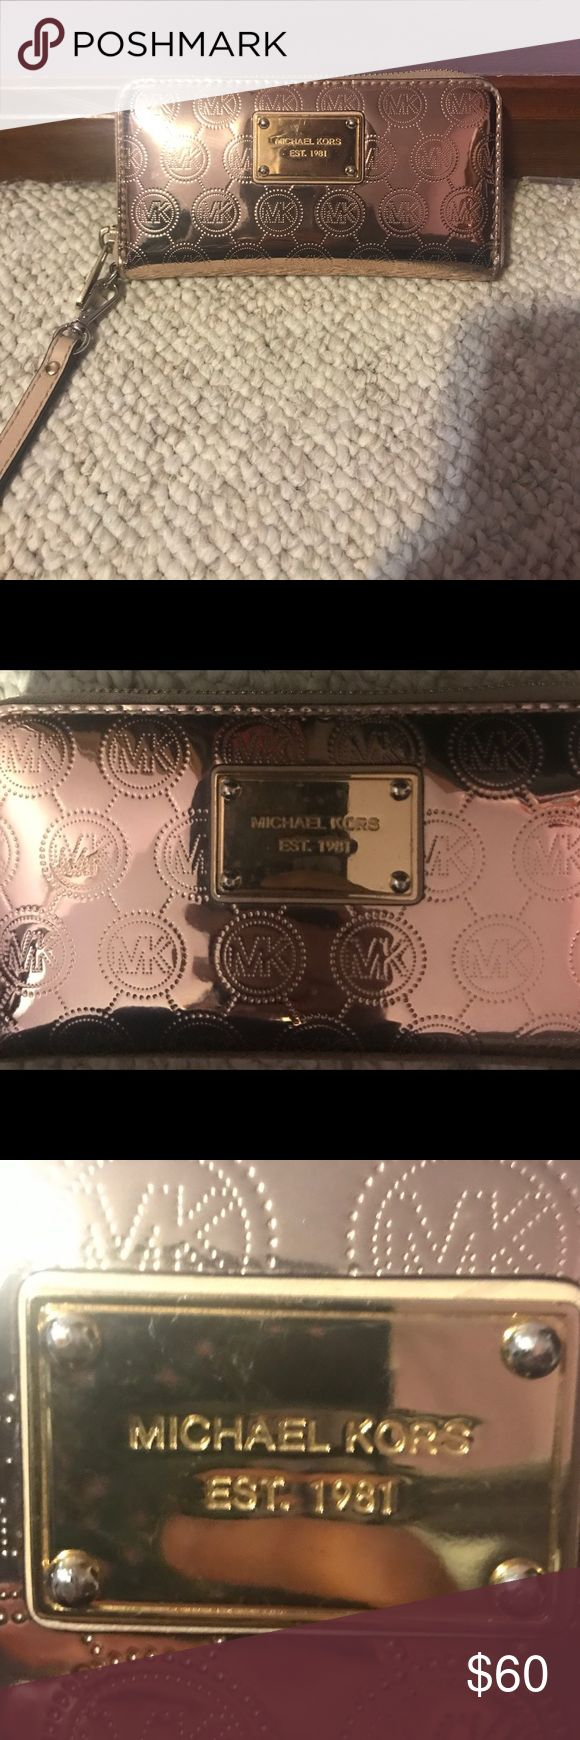 Micheal Kors Rose Gold Wallet Rose gold, MK logo wallet. In good condition, with some scratches on the metal logo (pictured) and a small pen mark by the zipper (also pictured). About 2 year's old, and includes: a money slot, space for a phone, zippered coin pouch, and 3 credit card holding spots inside. Michael Kors Bags Wallets